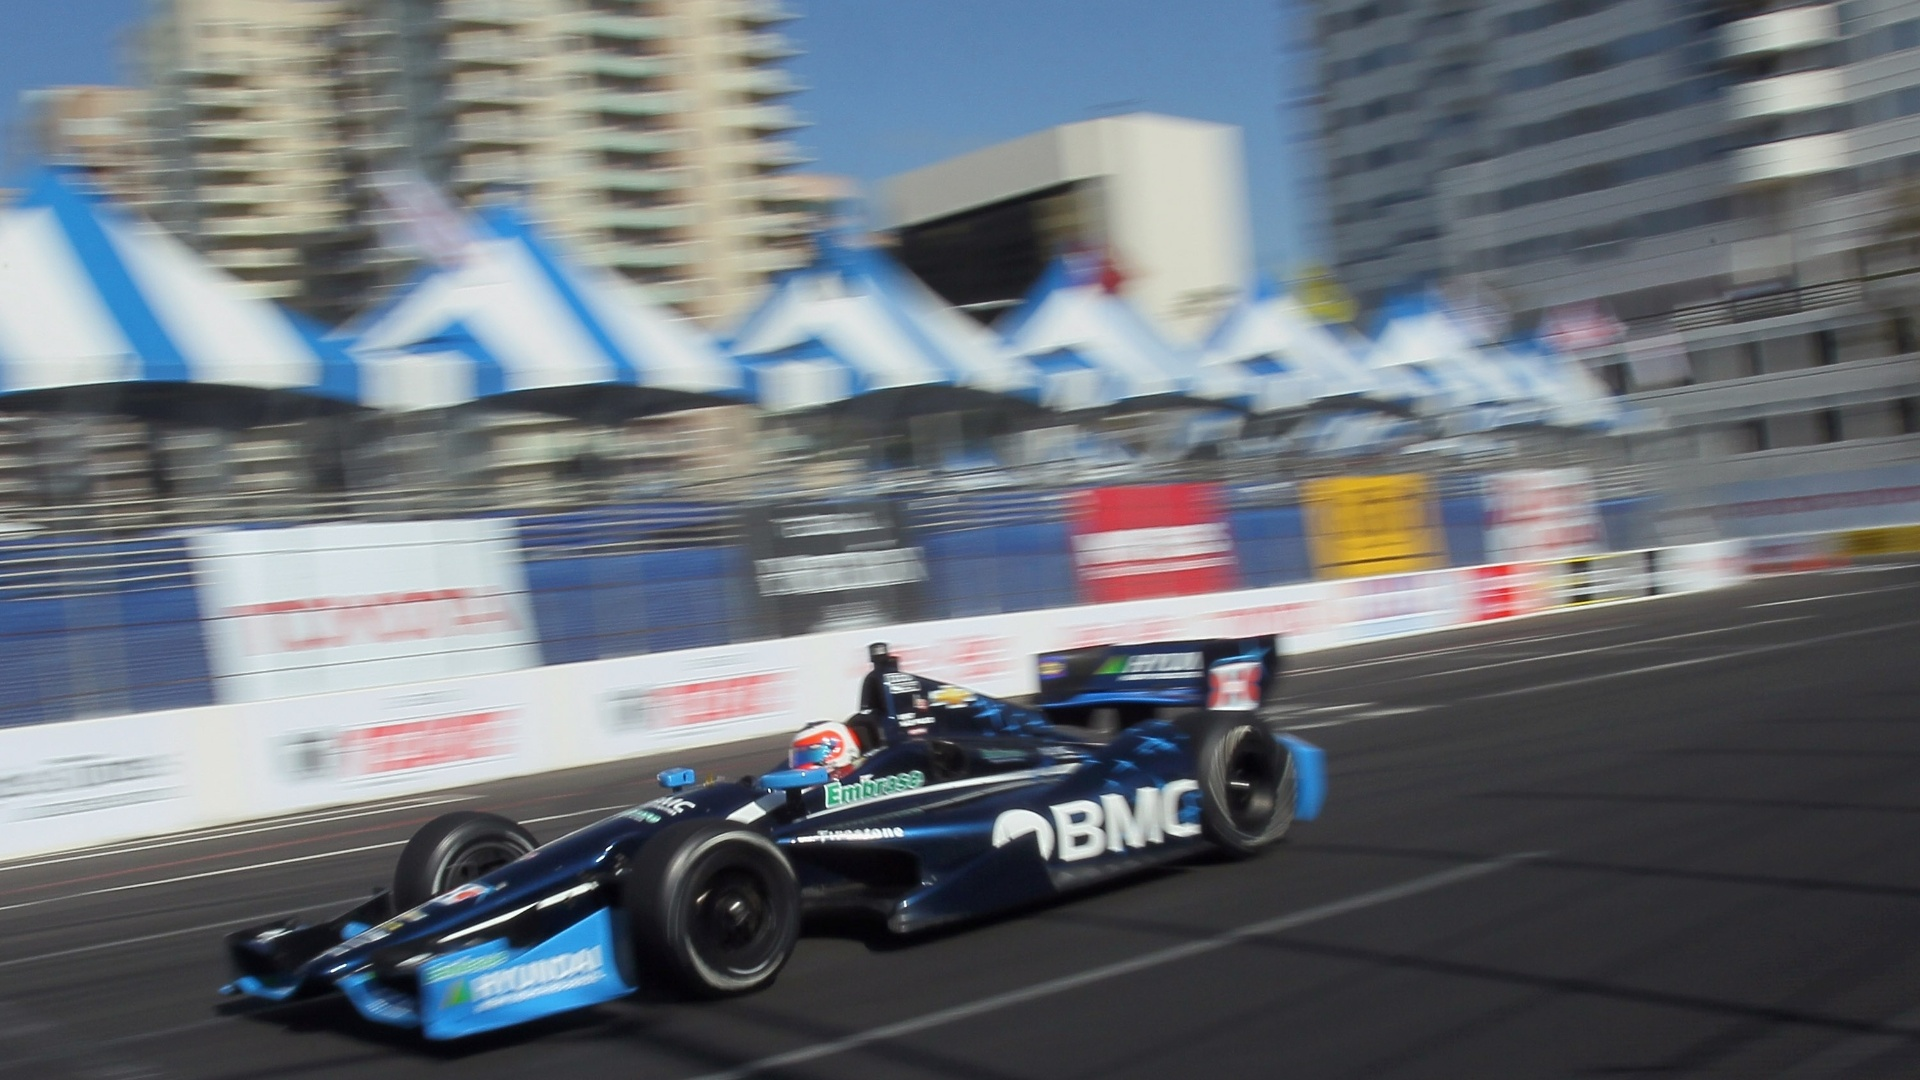 Rubens Barrichello durante a etapa de Long Beach da Indy. O piloto vinha em oitavo aps largar em 22, mas foi atingido por Helio Castroneves nos metros finais da ltima volta. Os dois no receberam a bandeirada por conta do acidente e Barrichello ficou com a nona posio